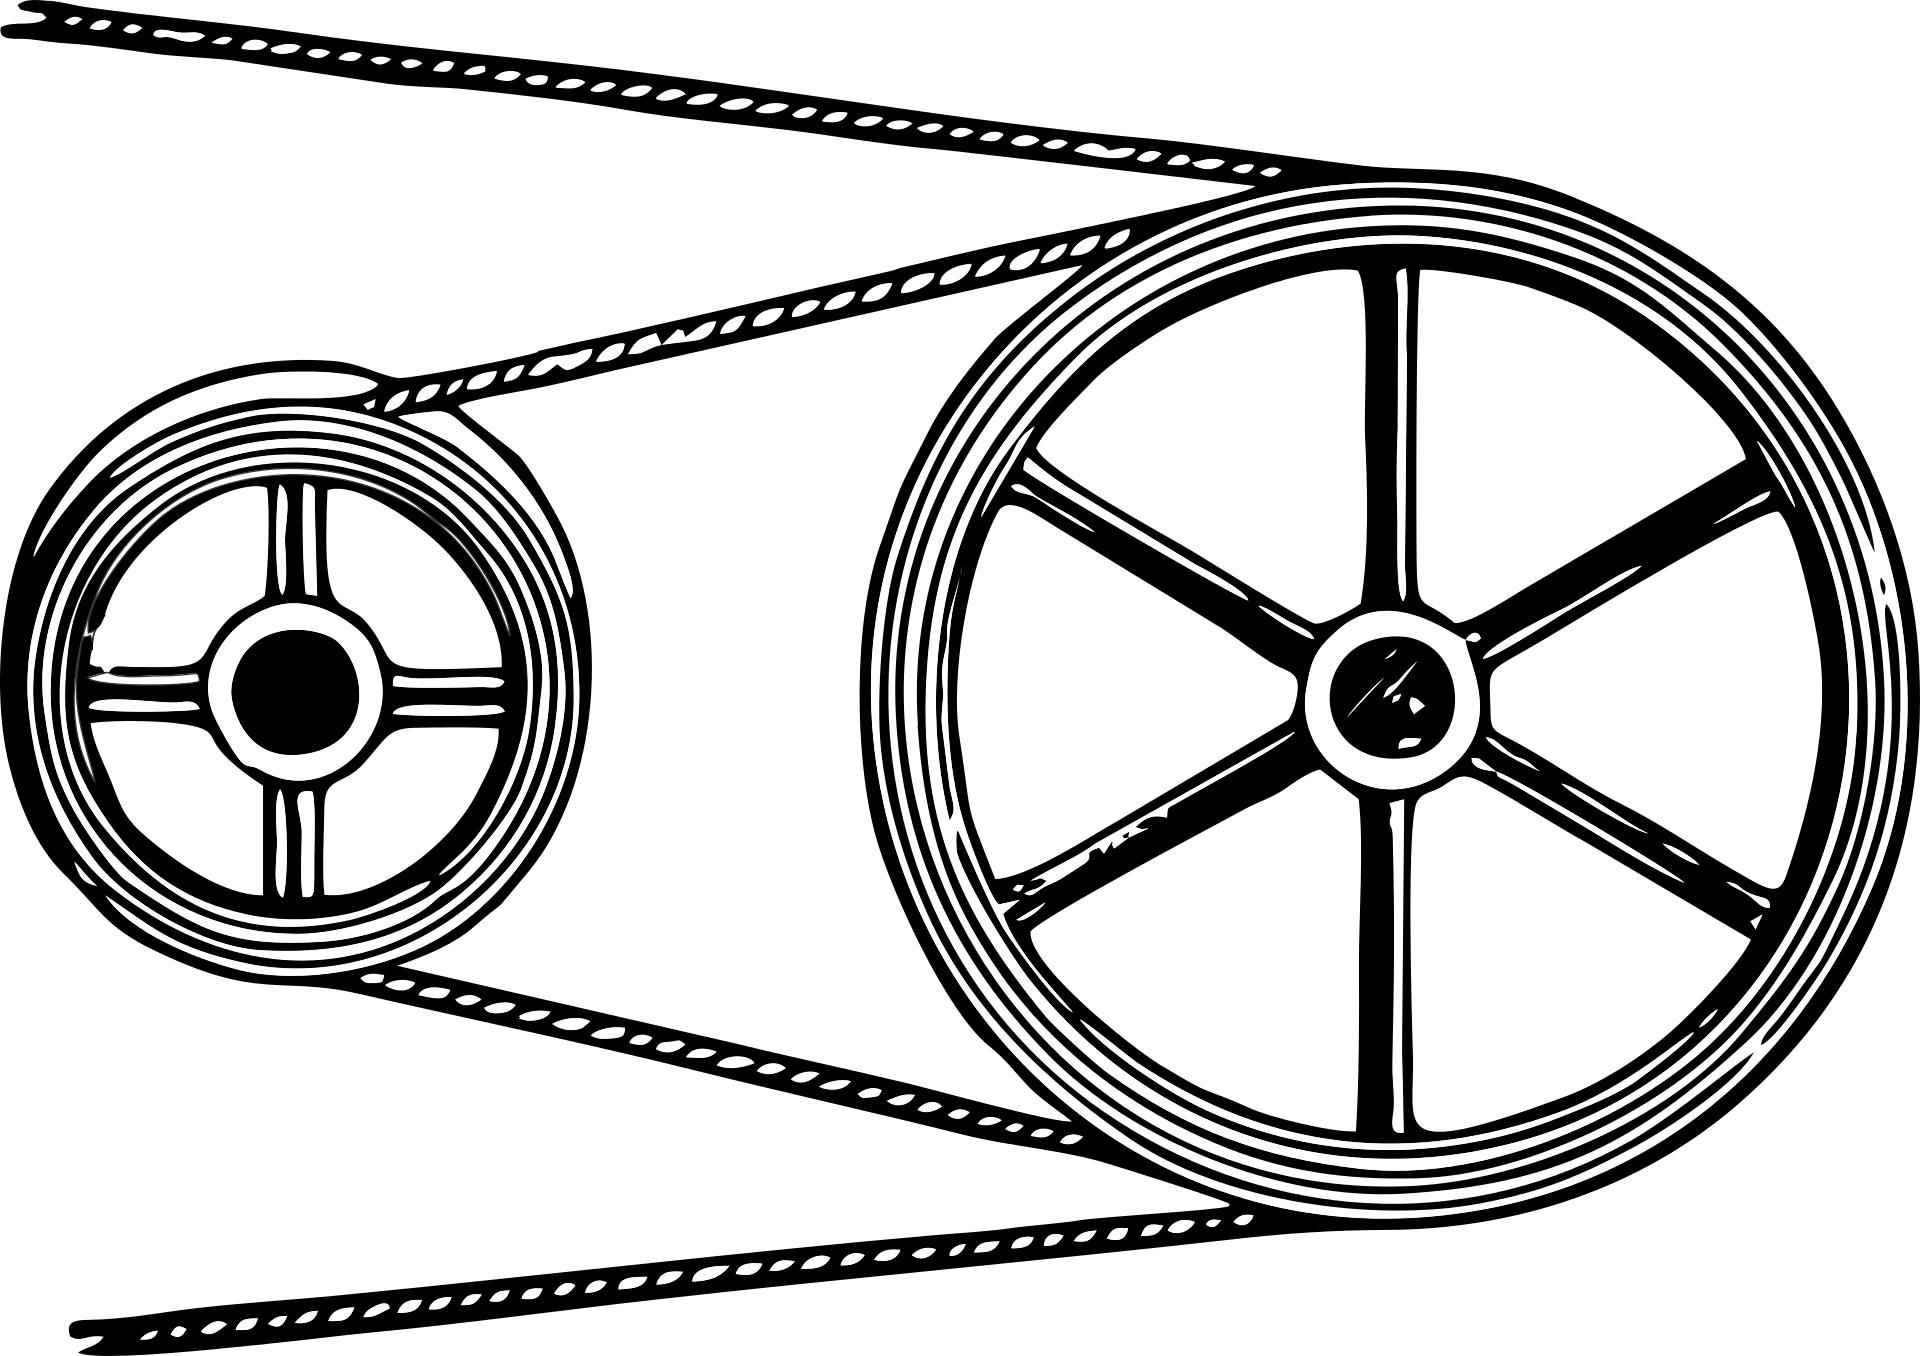 drawing of a pulley system